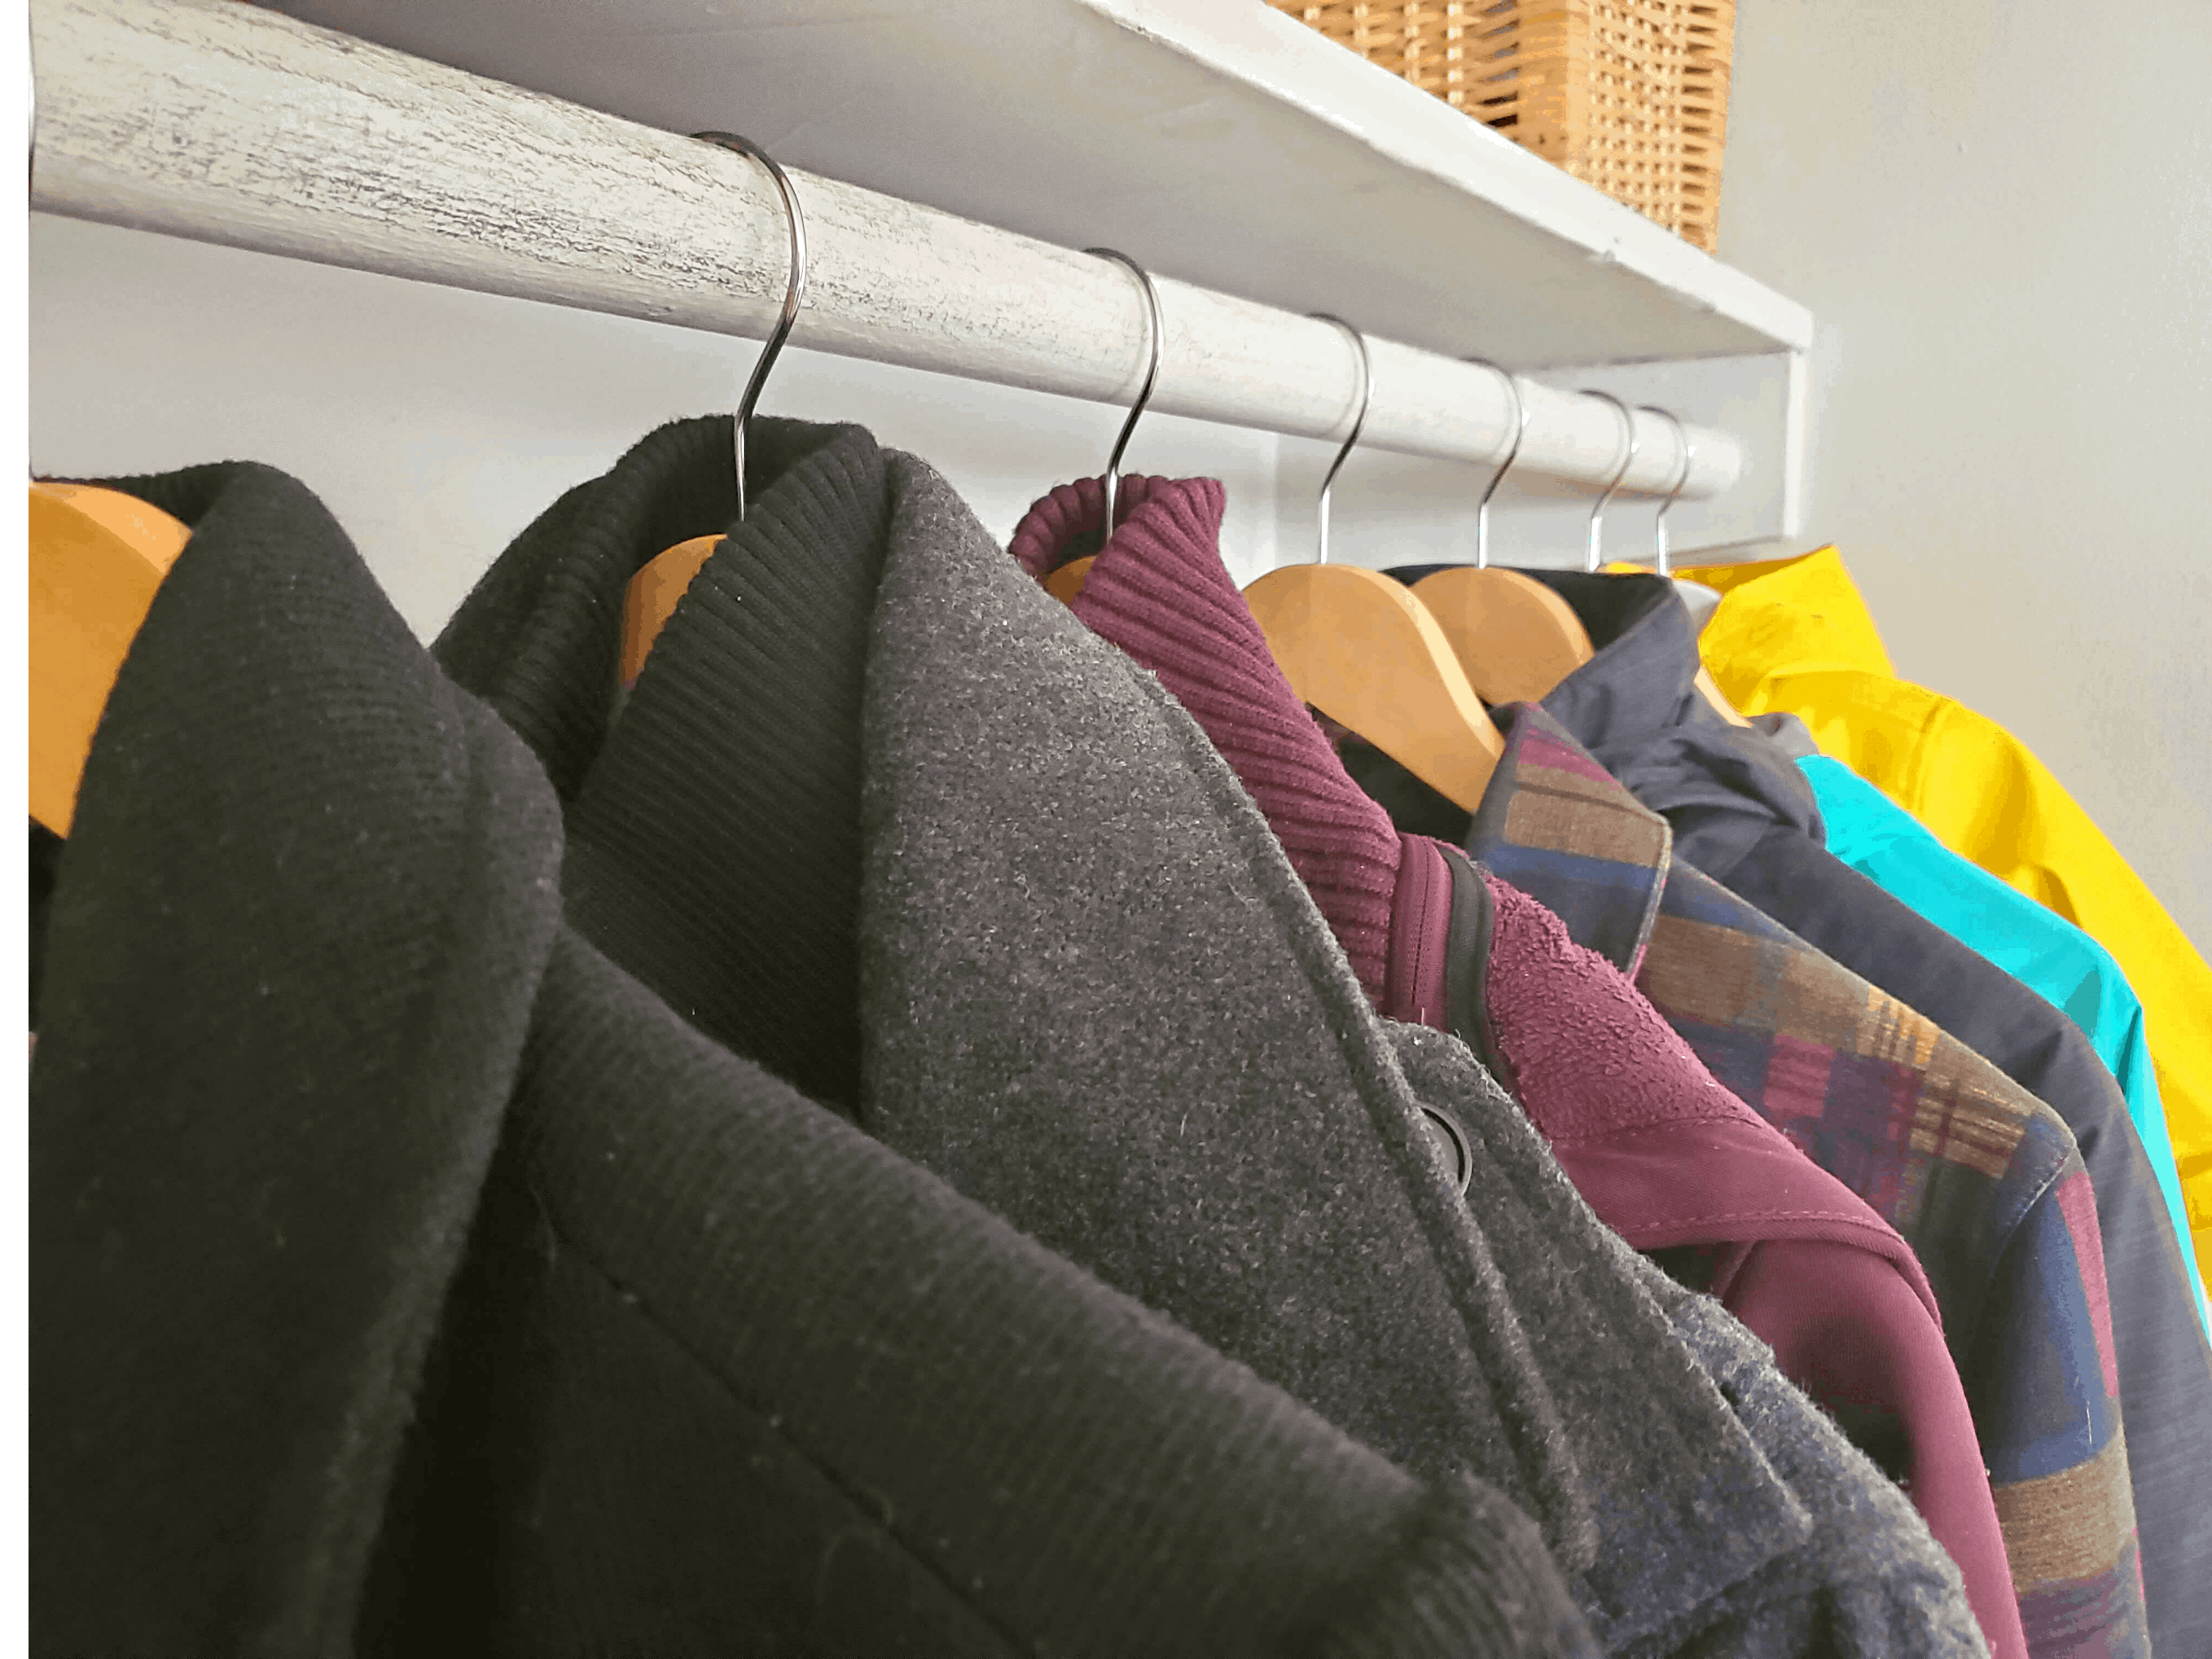 coats hanging on a rod